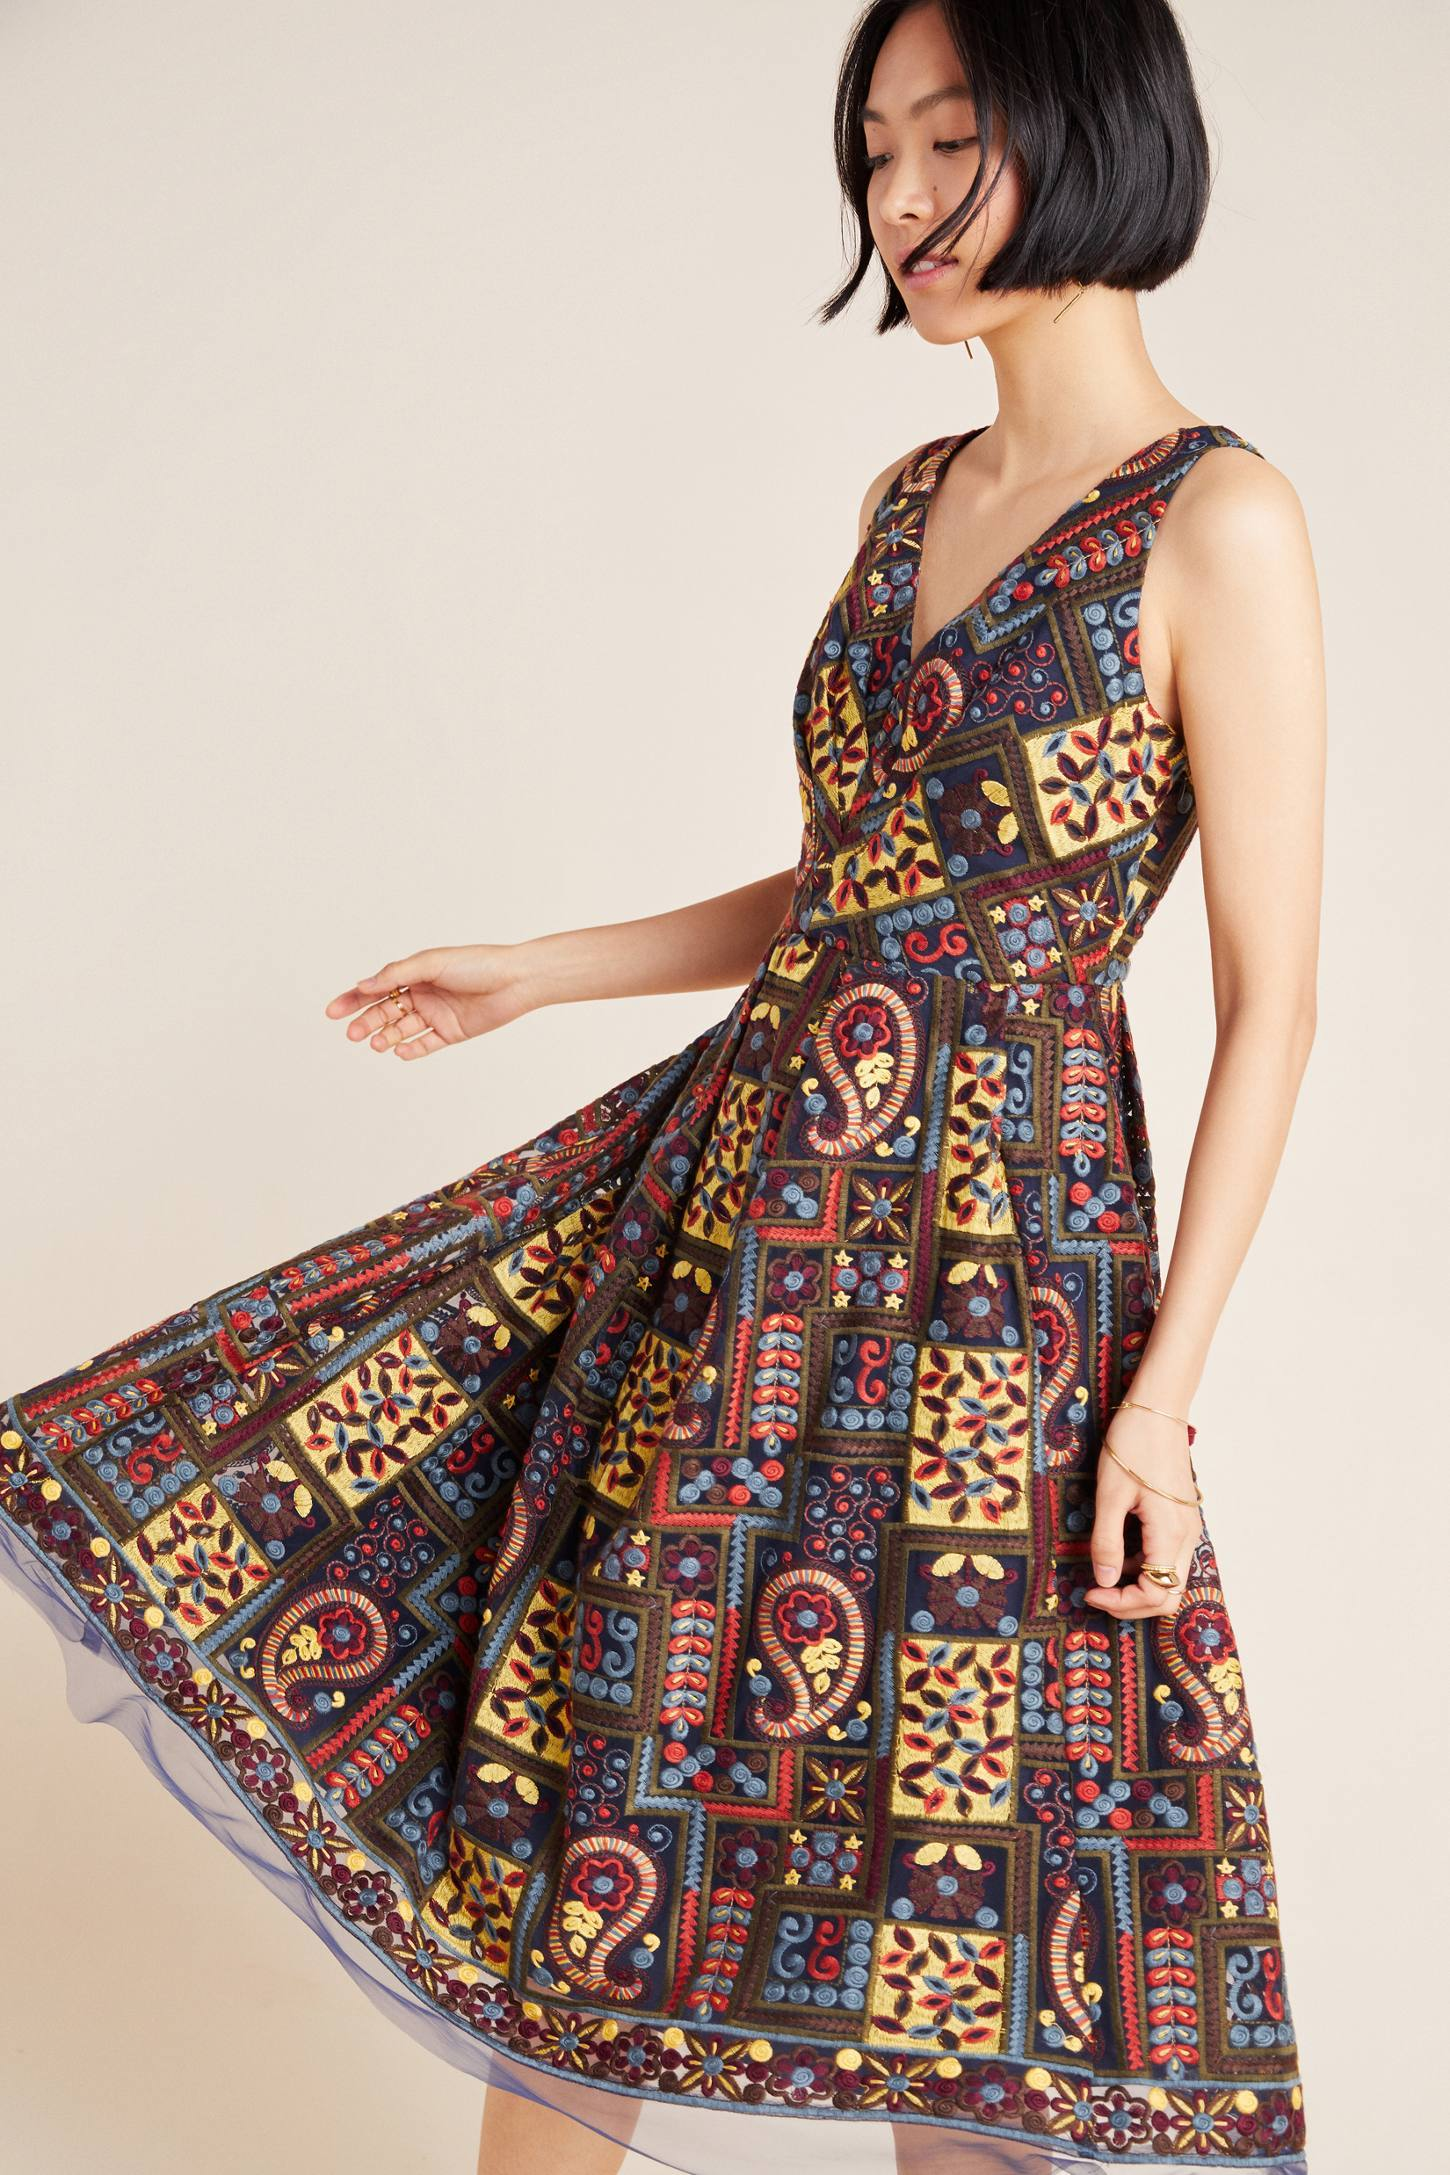 Eva Franco Dress Charlotte Dress in Florika Paisley